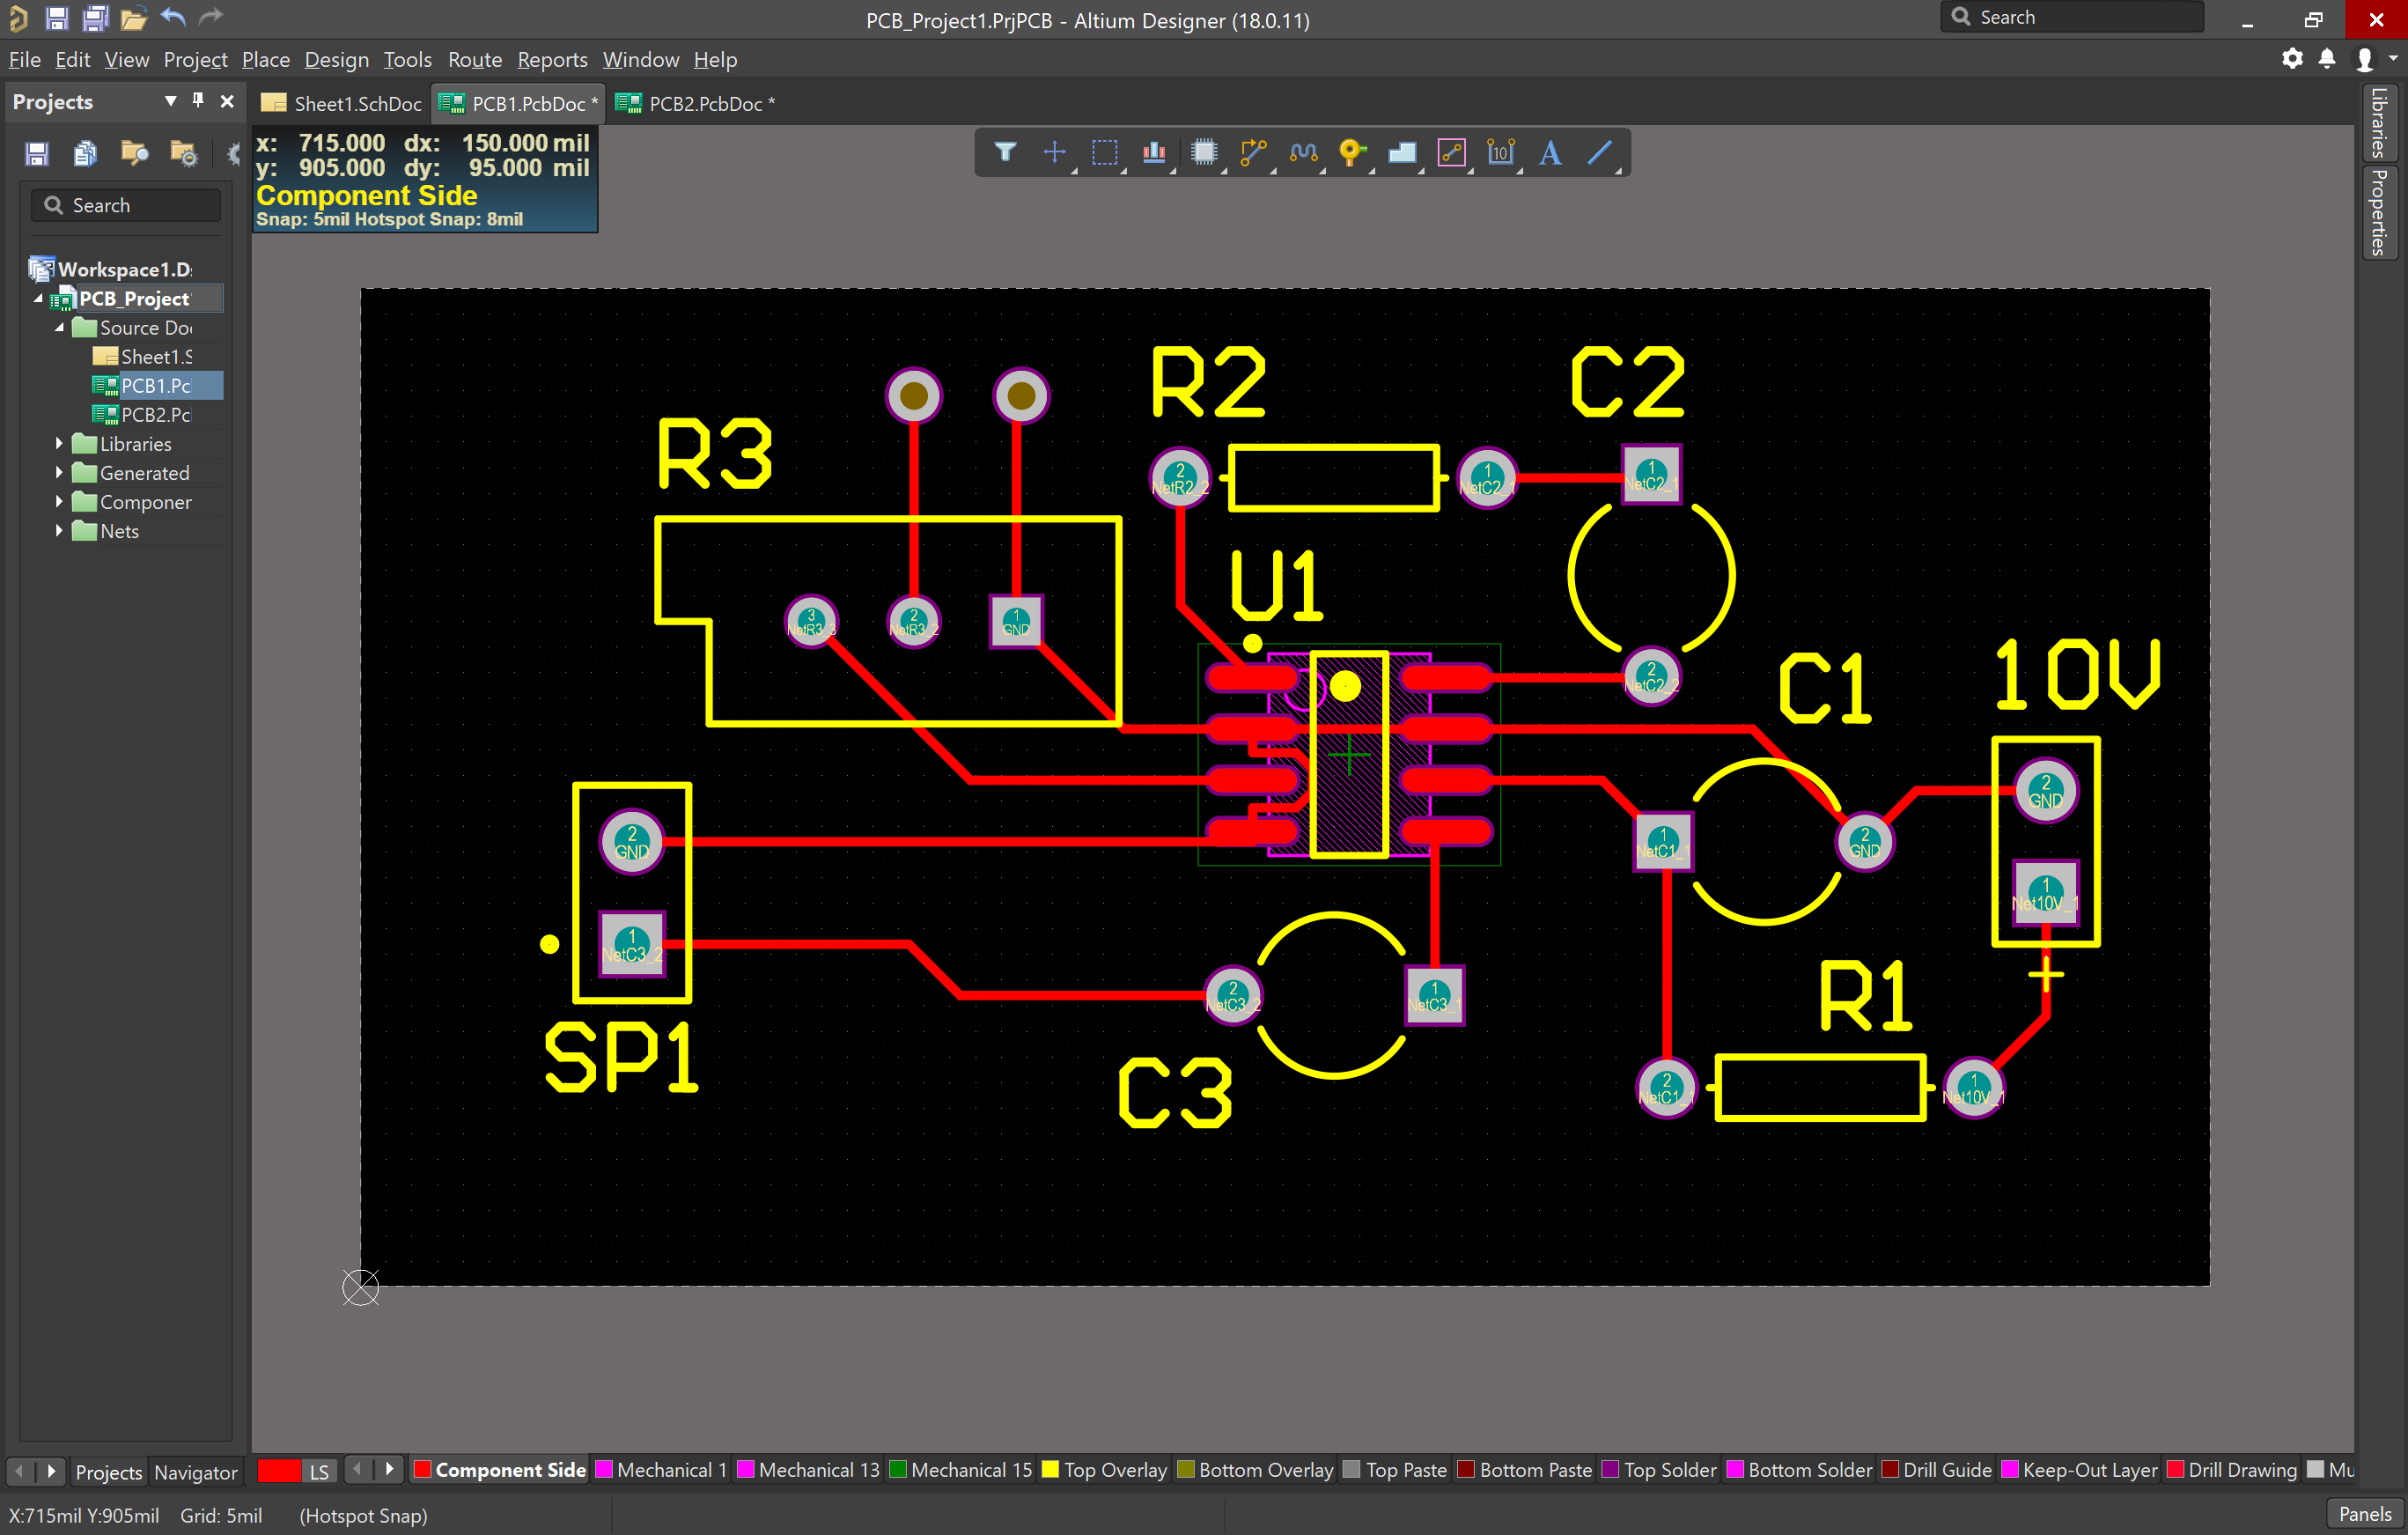 Fully routed and with vias added PCB in Altium